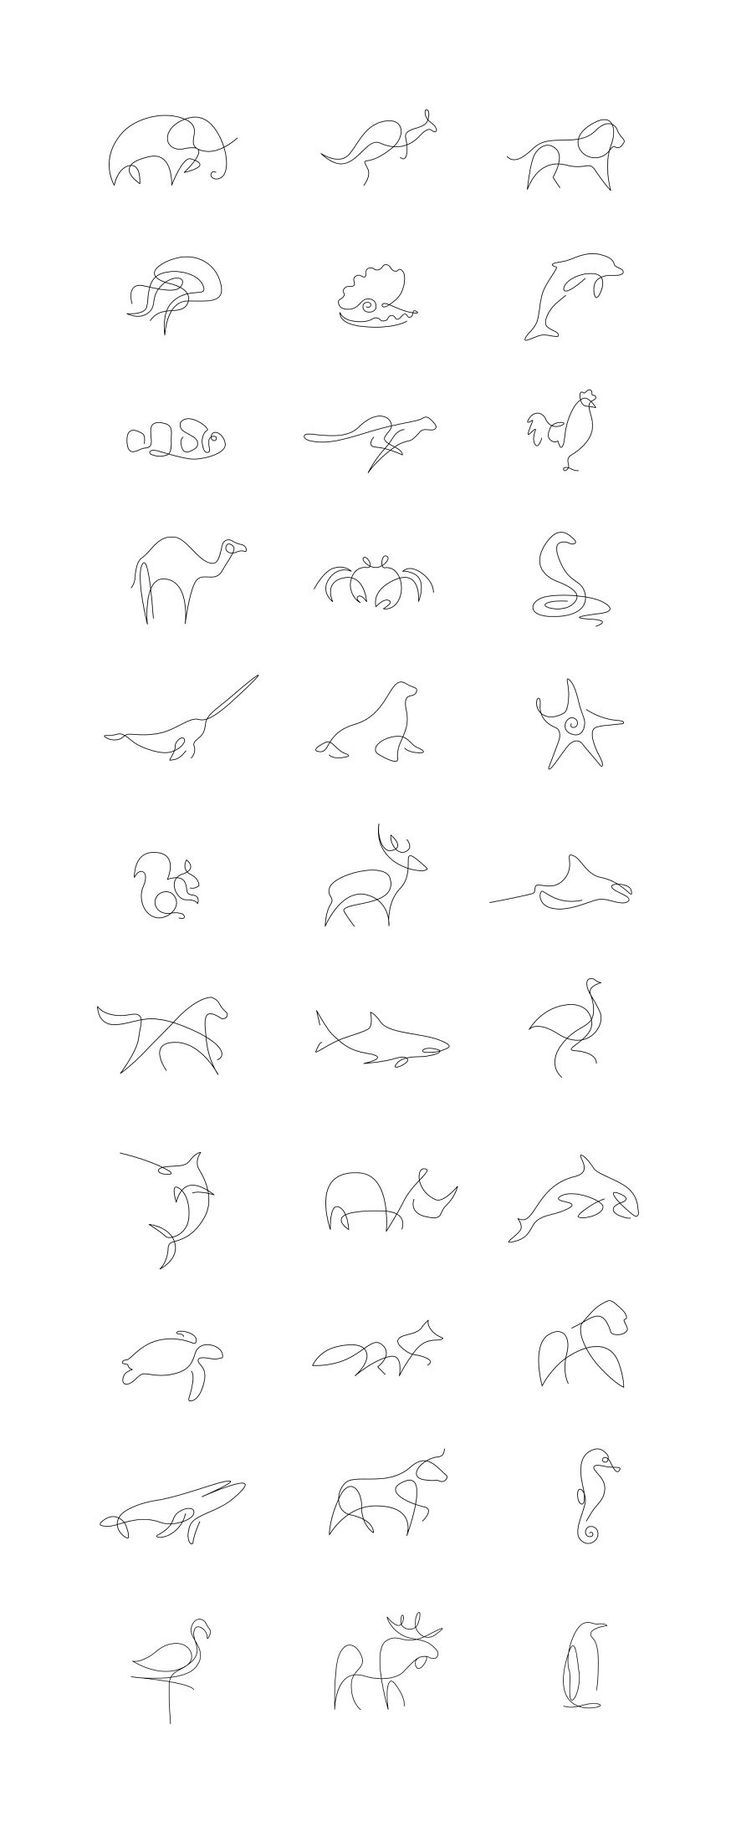 Tiny Tattoo Idea – Minimalist One Line Animals By A French Artist Duo